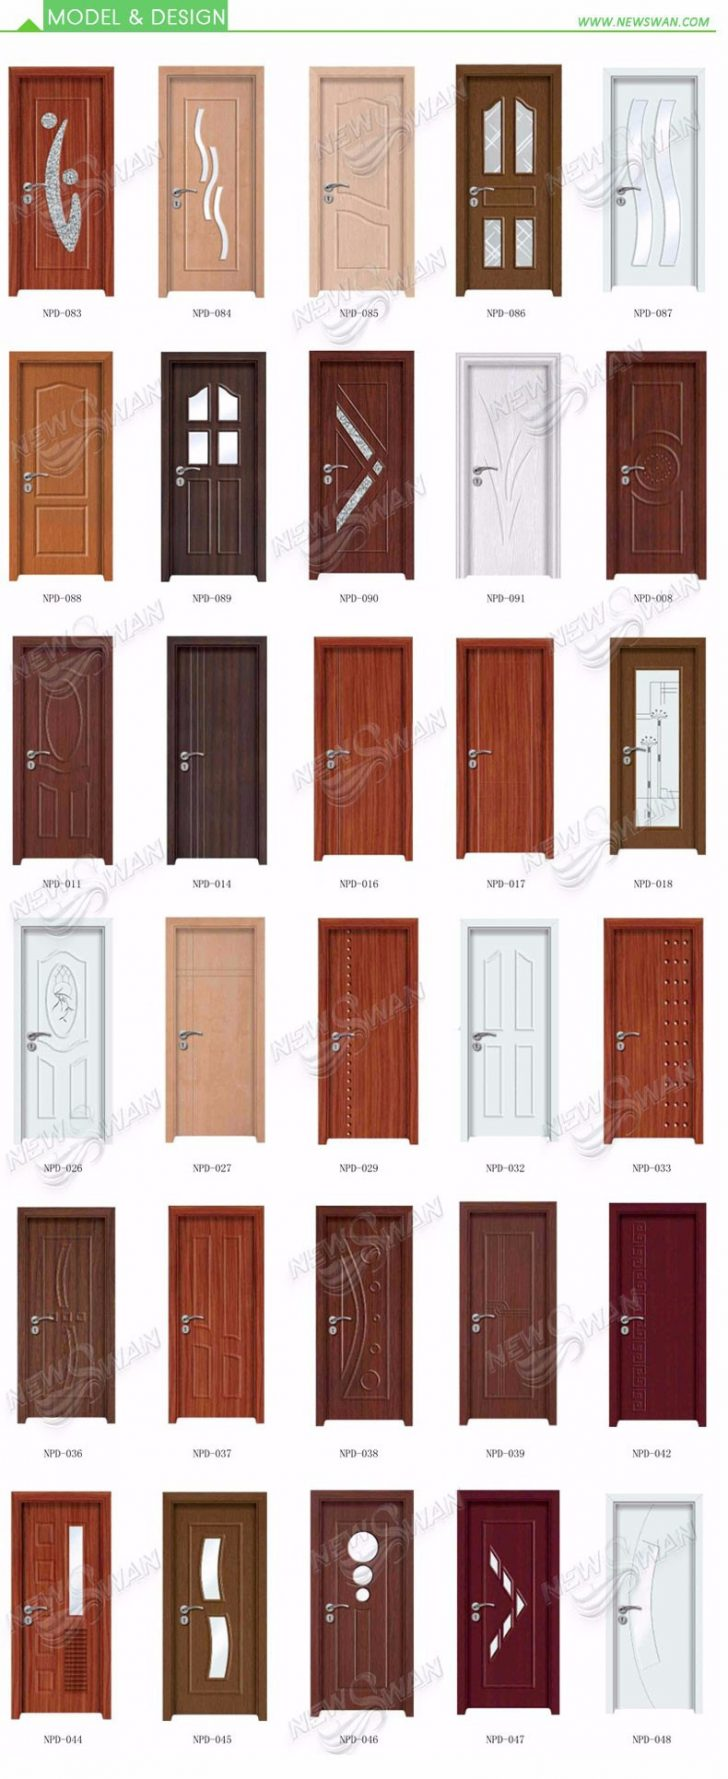 Cabinet Door Prices 2020